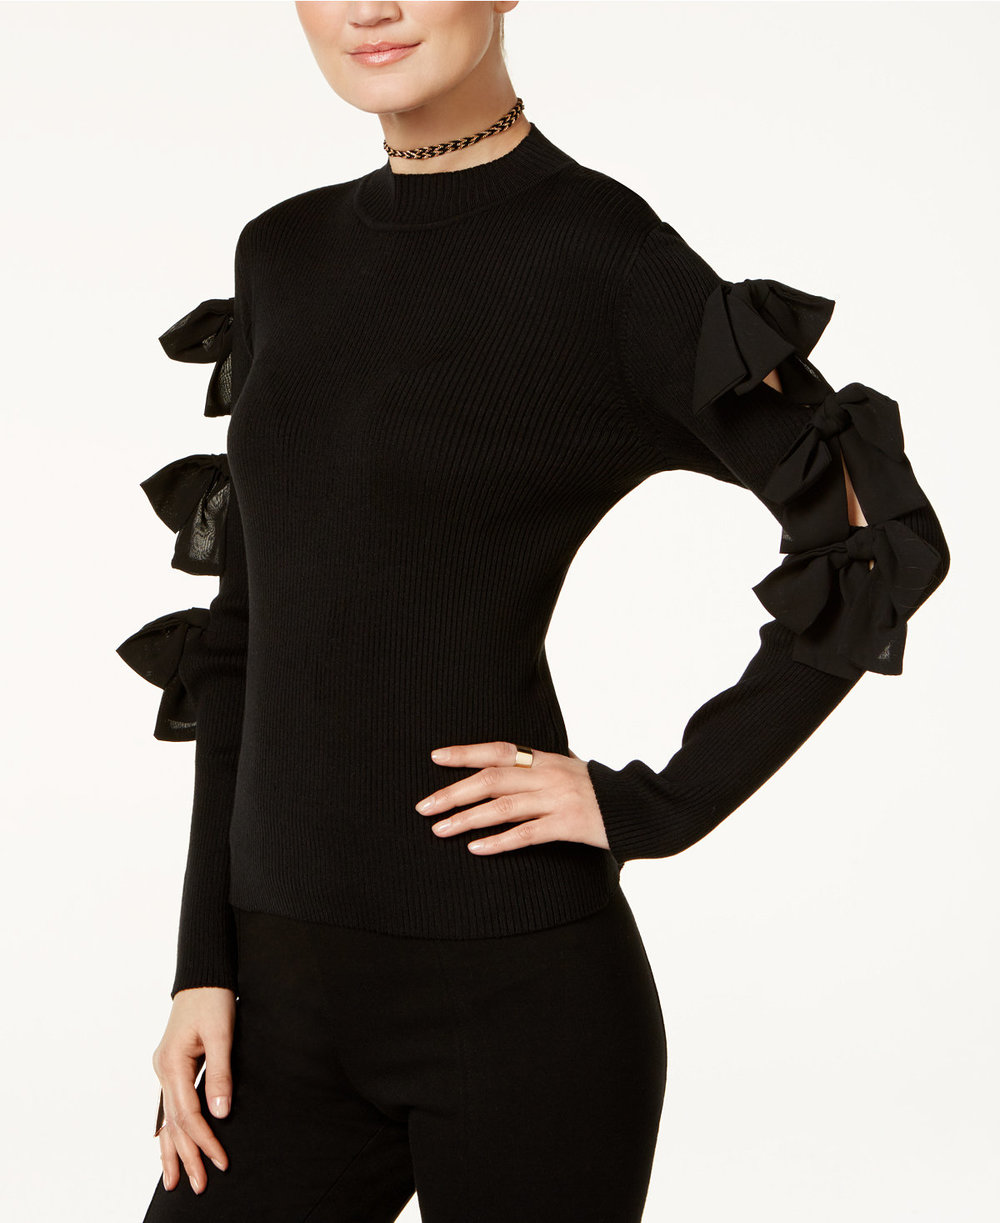 BOW KNITS - Bow sleeve sweater